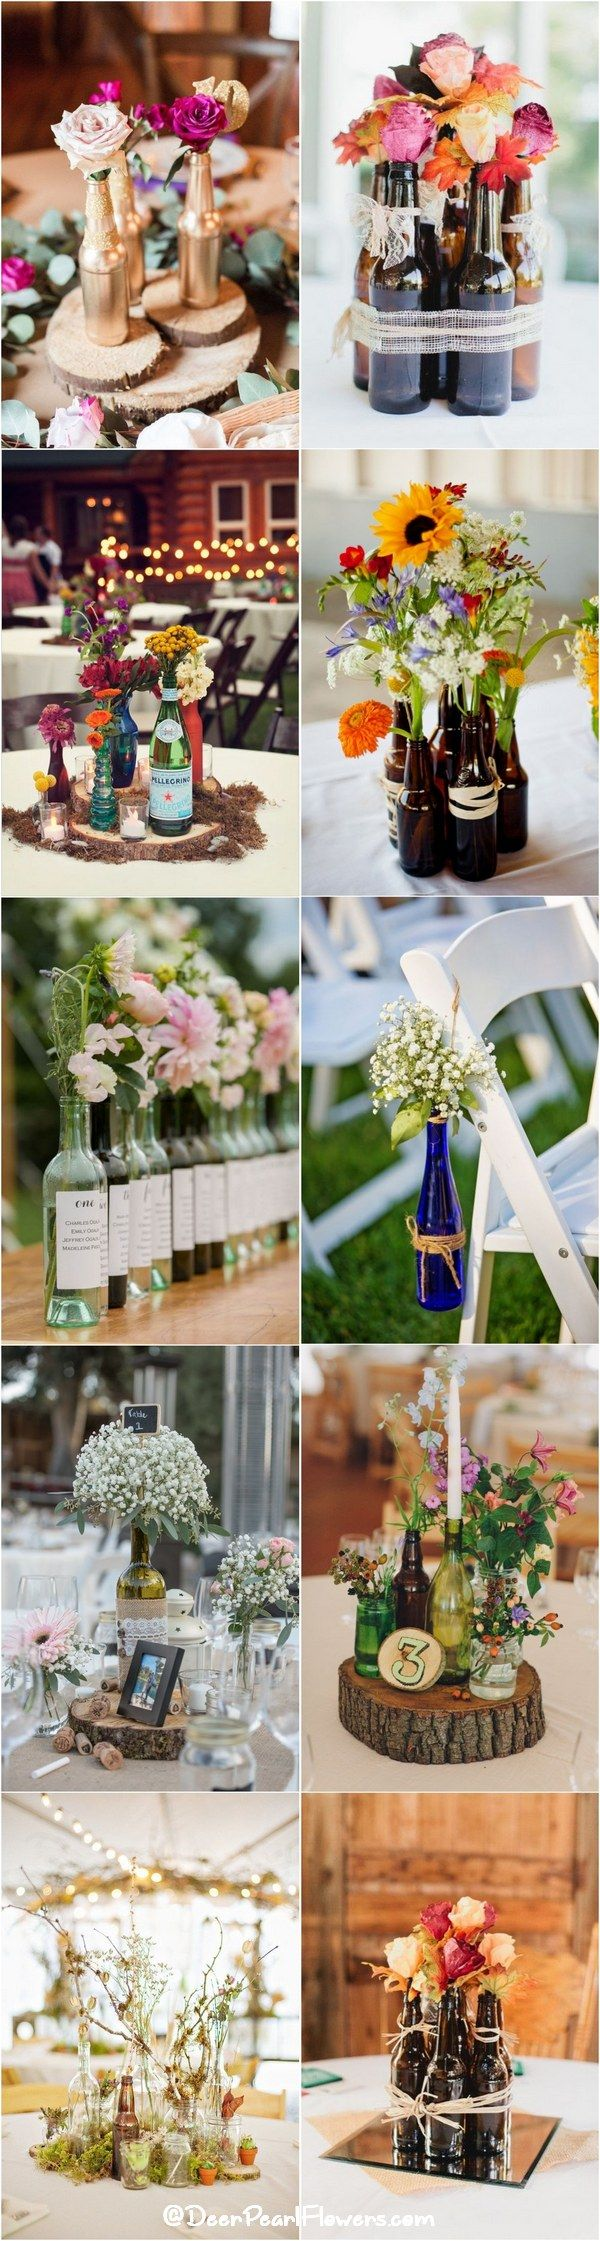 1000 ideas about vineyard wedding themes on pinterest for Wine bottle ideas for weddings